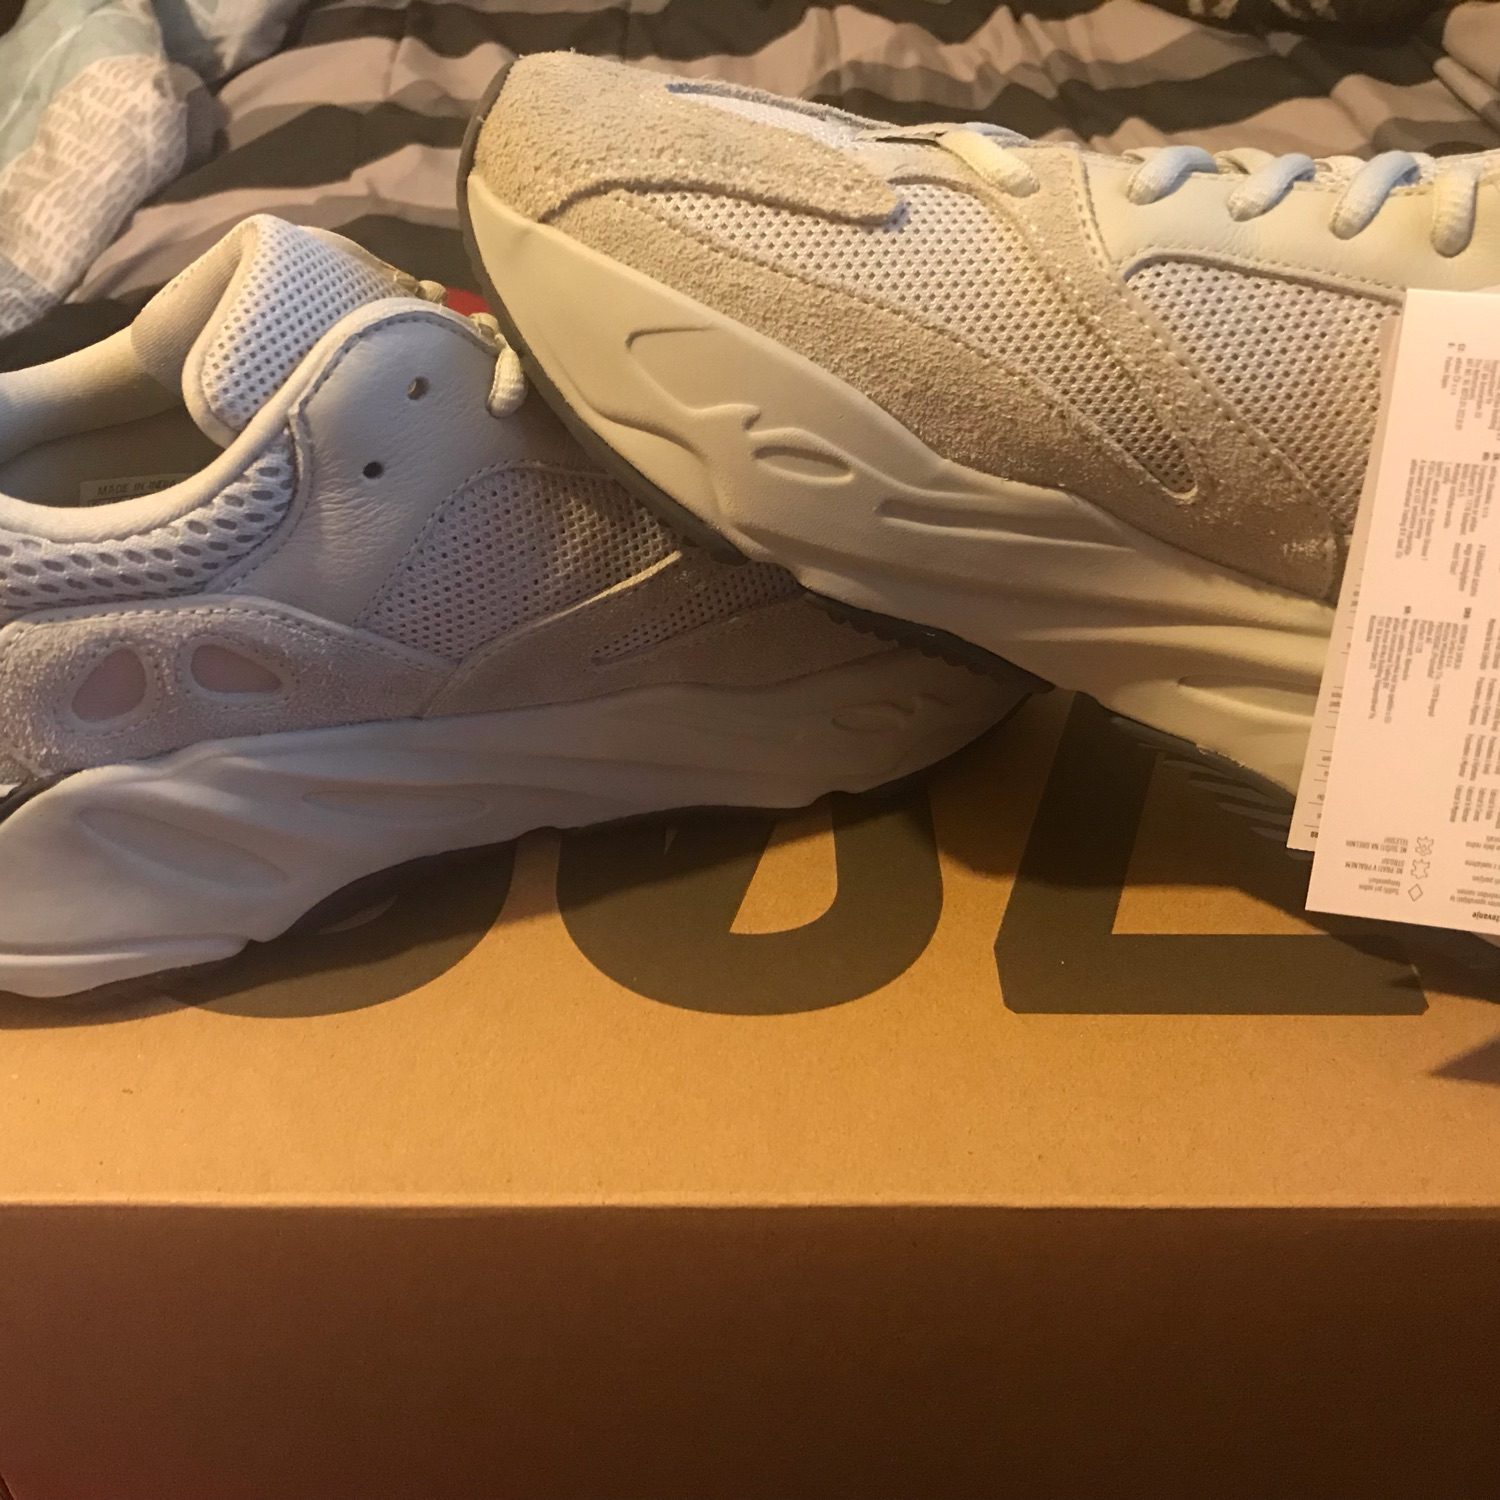 new arrivals ece2a 00c17 Yeezy 700 Salt (Sold To Goat)